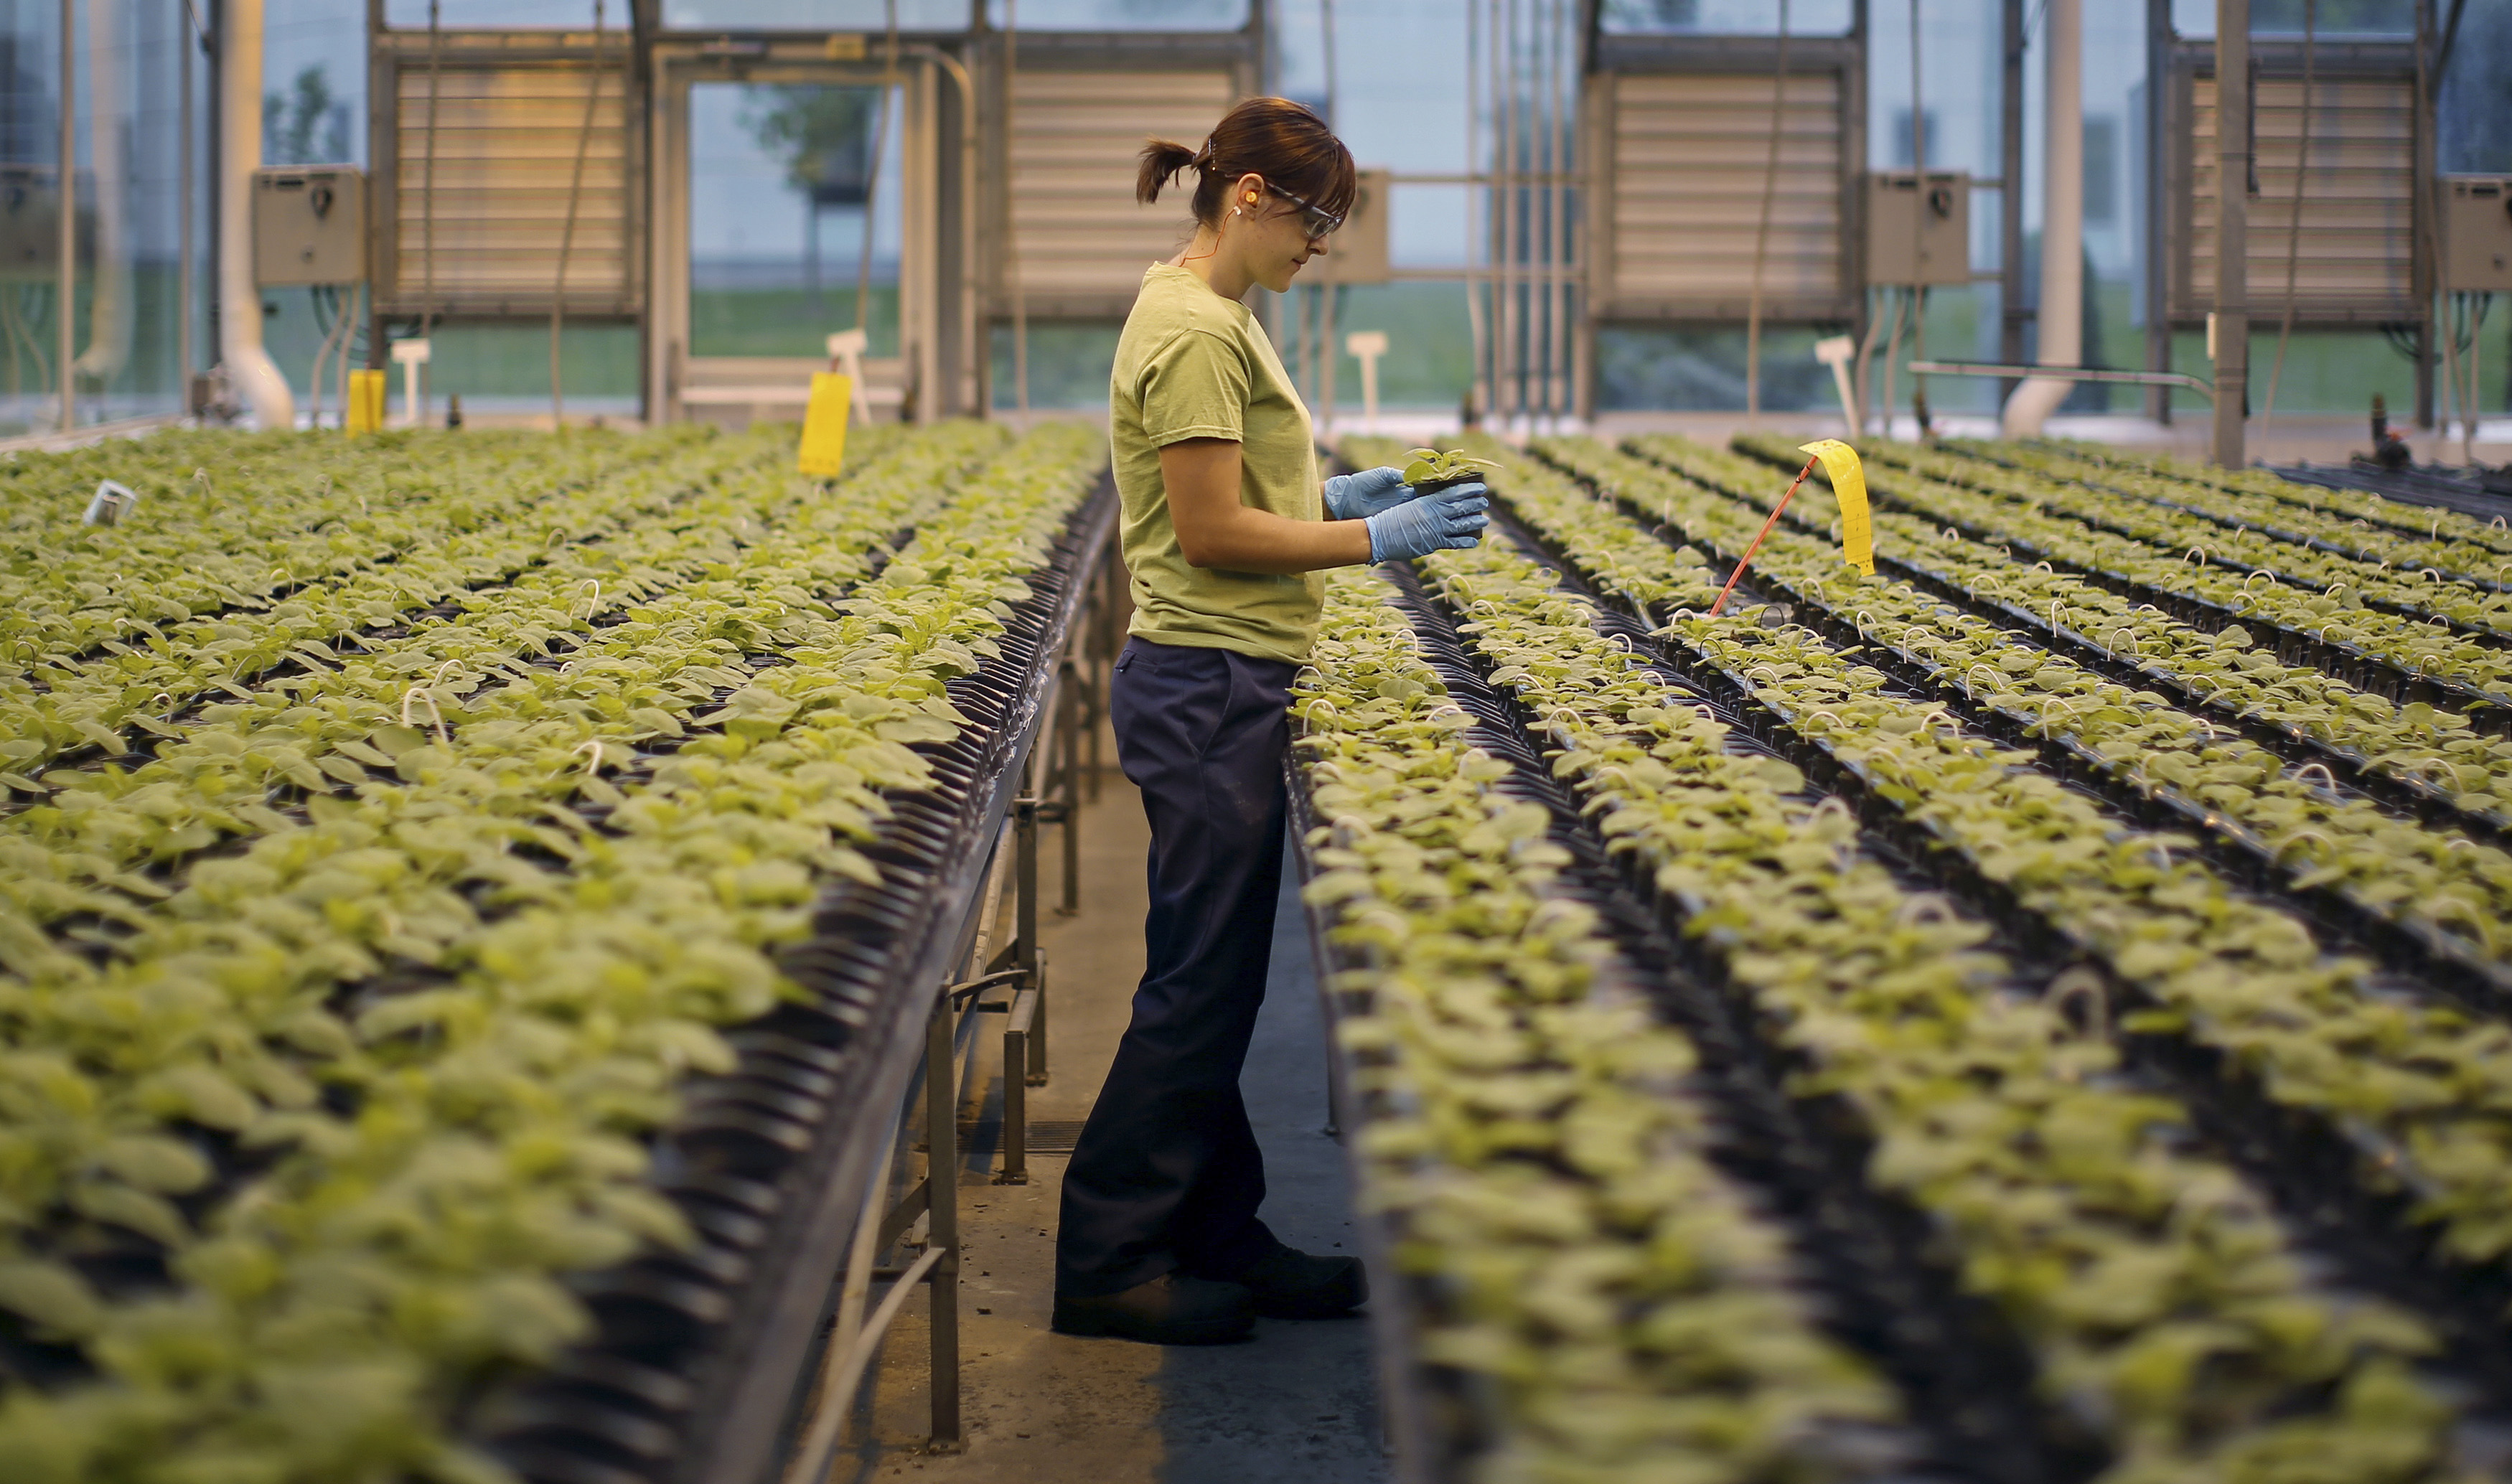 Tobacco plants are grown for six weeks in the Medicago greenhouse in Quebec City so their leaves are large enough to serve as a factory for making antibodies. The plants are not modified or genetically altered in any way during this time.